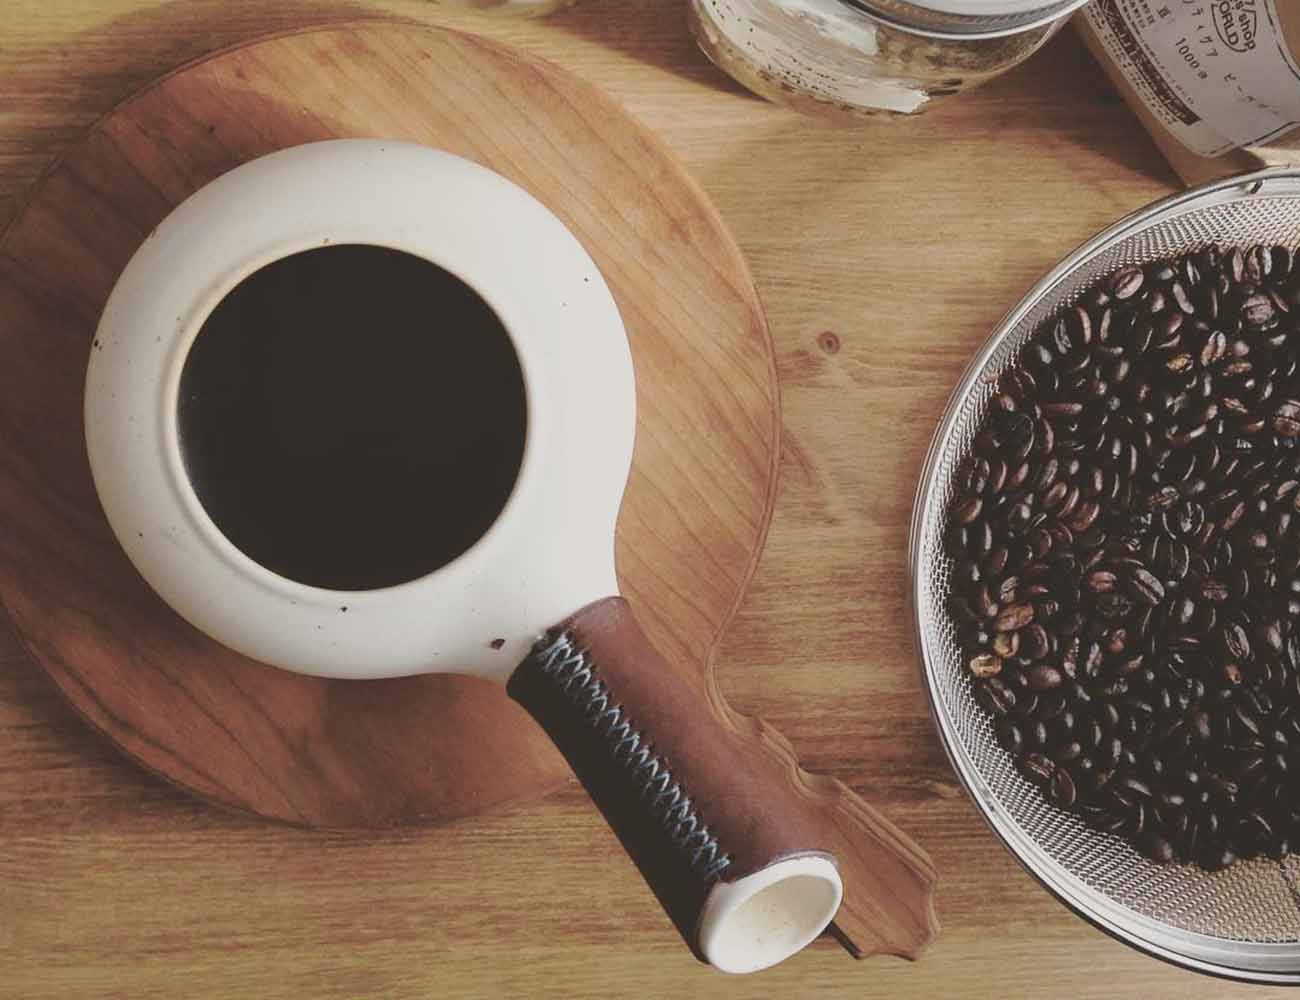 Horoku – The Ceramic Coffee Roaster by zenroast